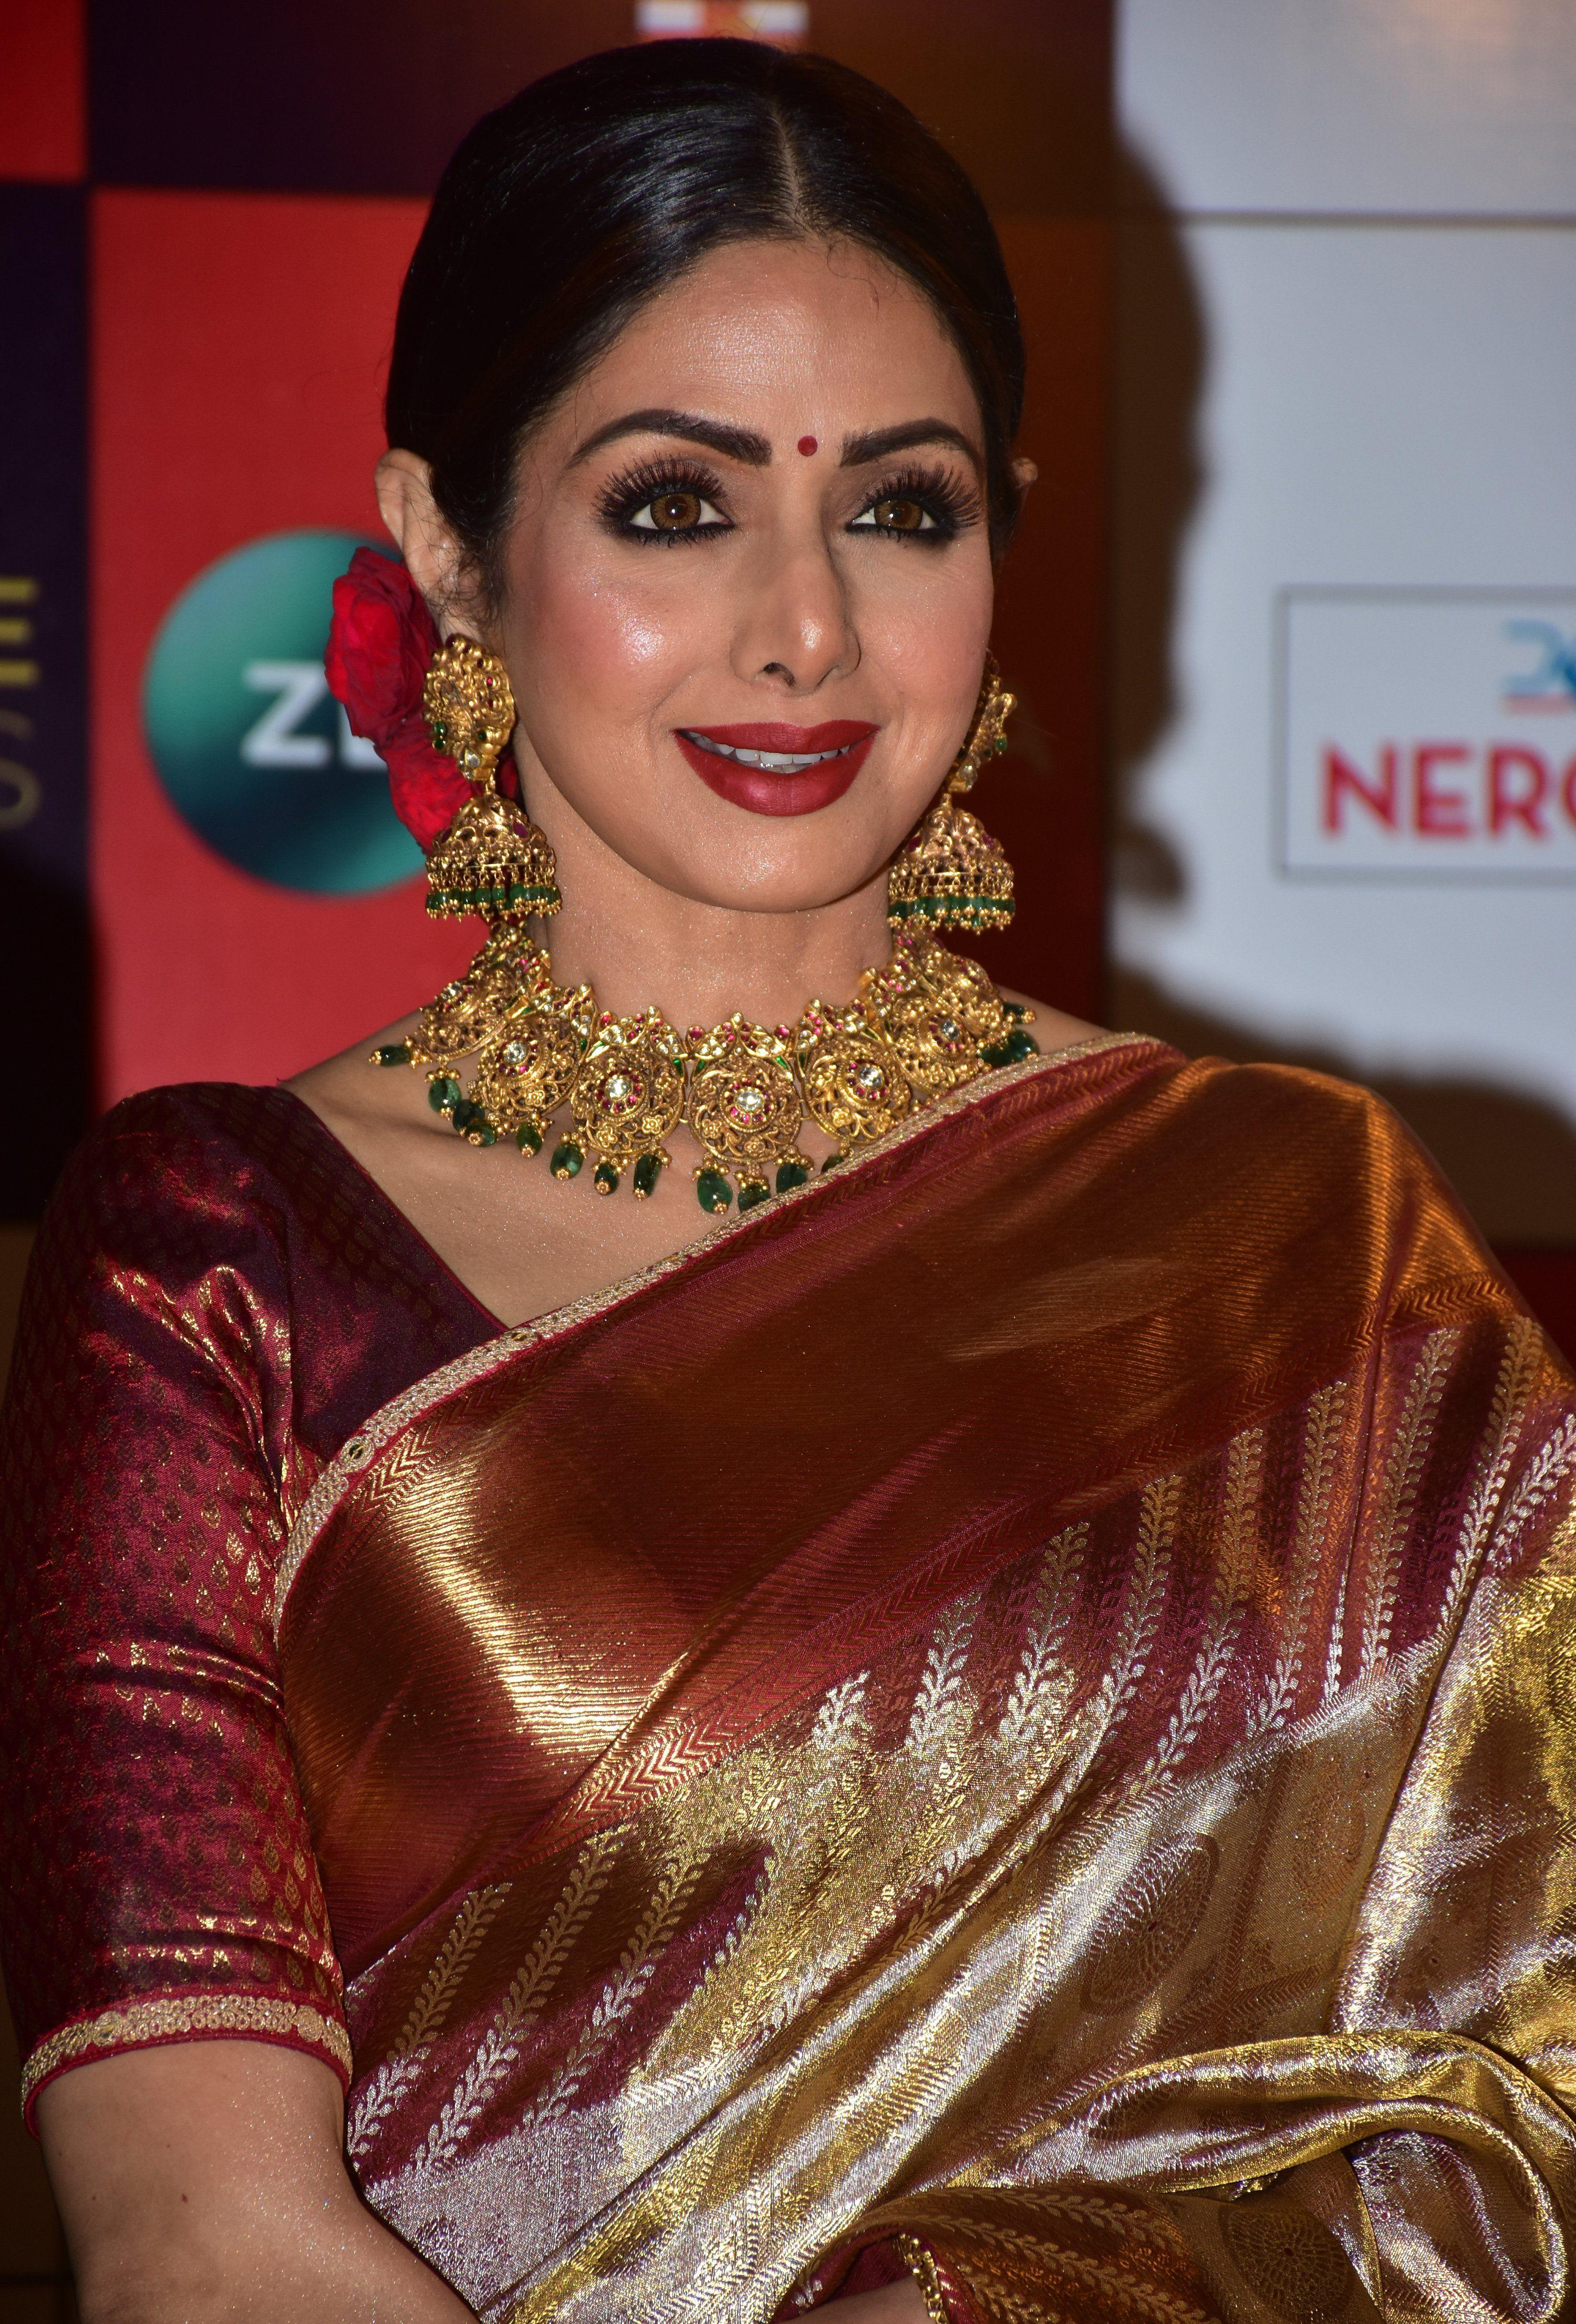 Priyanka Chopra Reacts To Sridevi's Sudden Death: 'I Have No Words